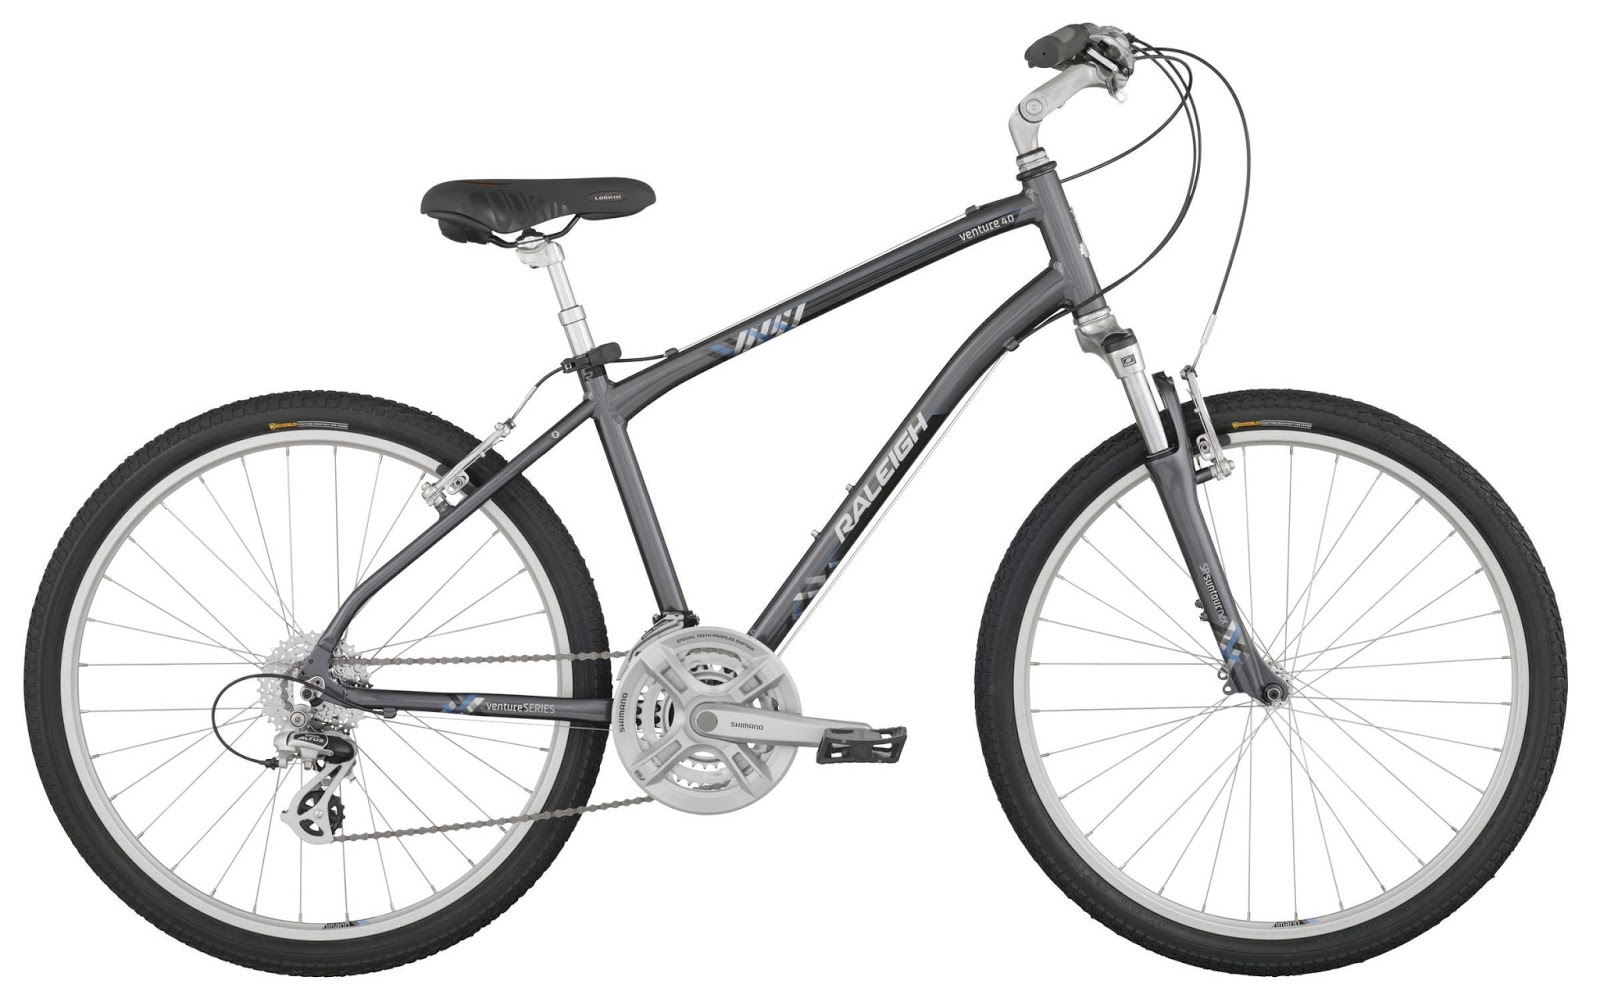 d936cc5adc8 Century Cycles Blog: Used Rental Bike Sale: Saturday, September 19 ...